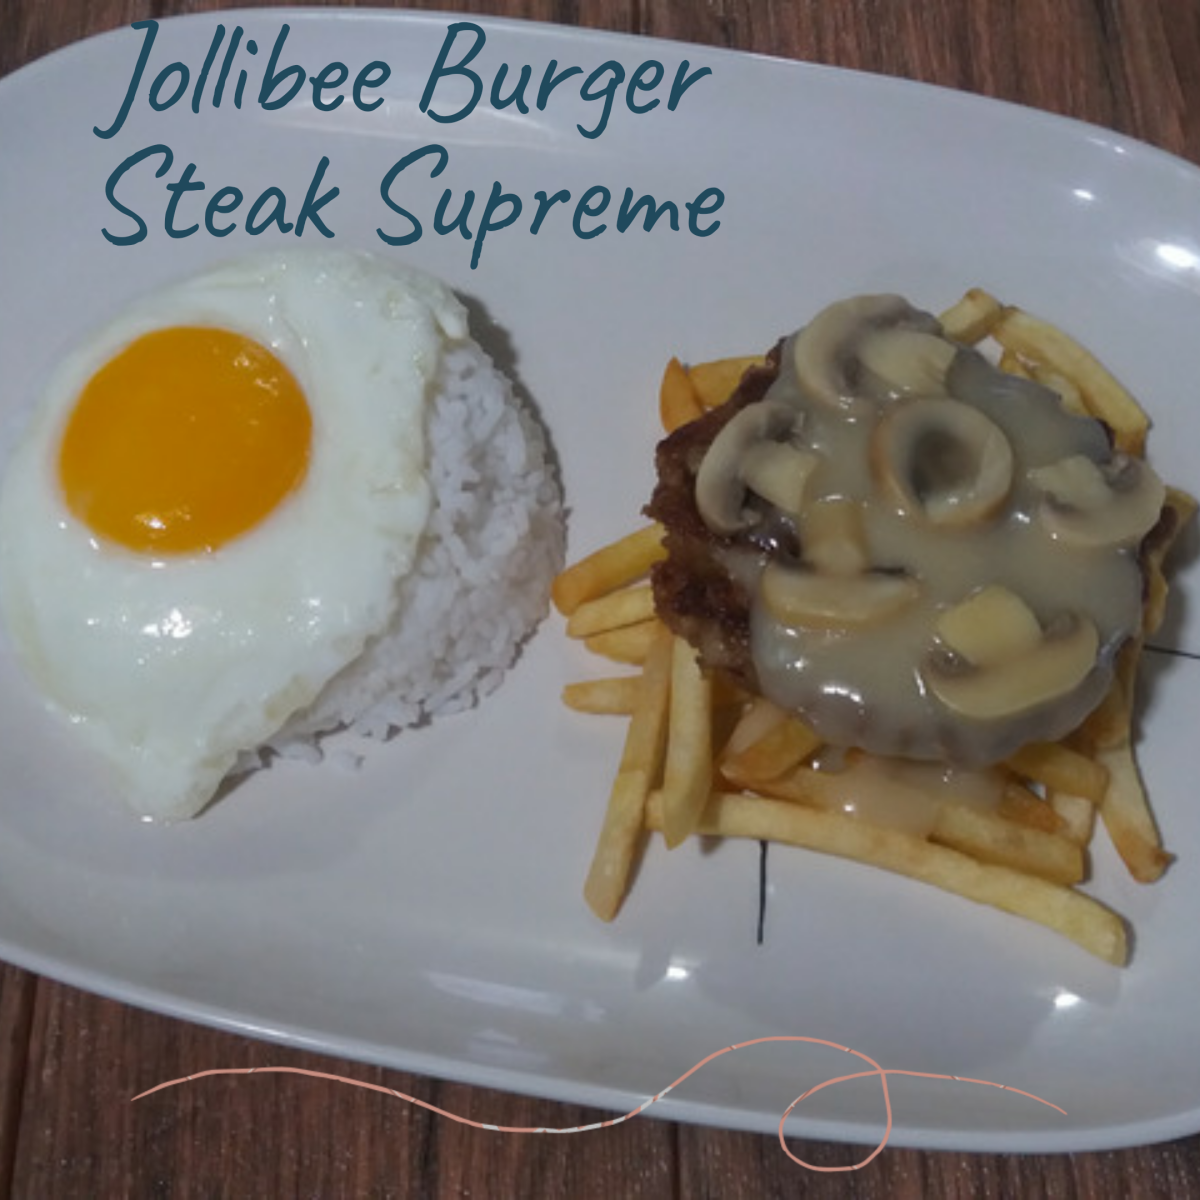 Jollibee burger steak supreme